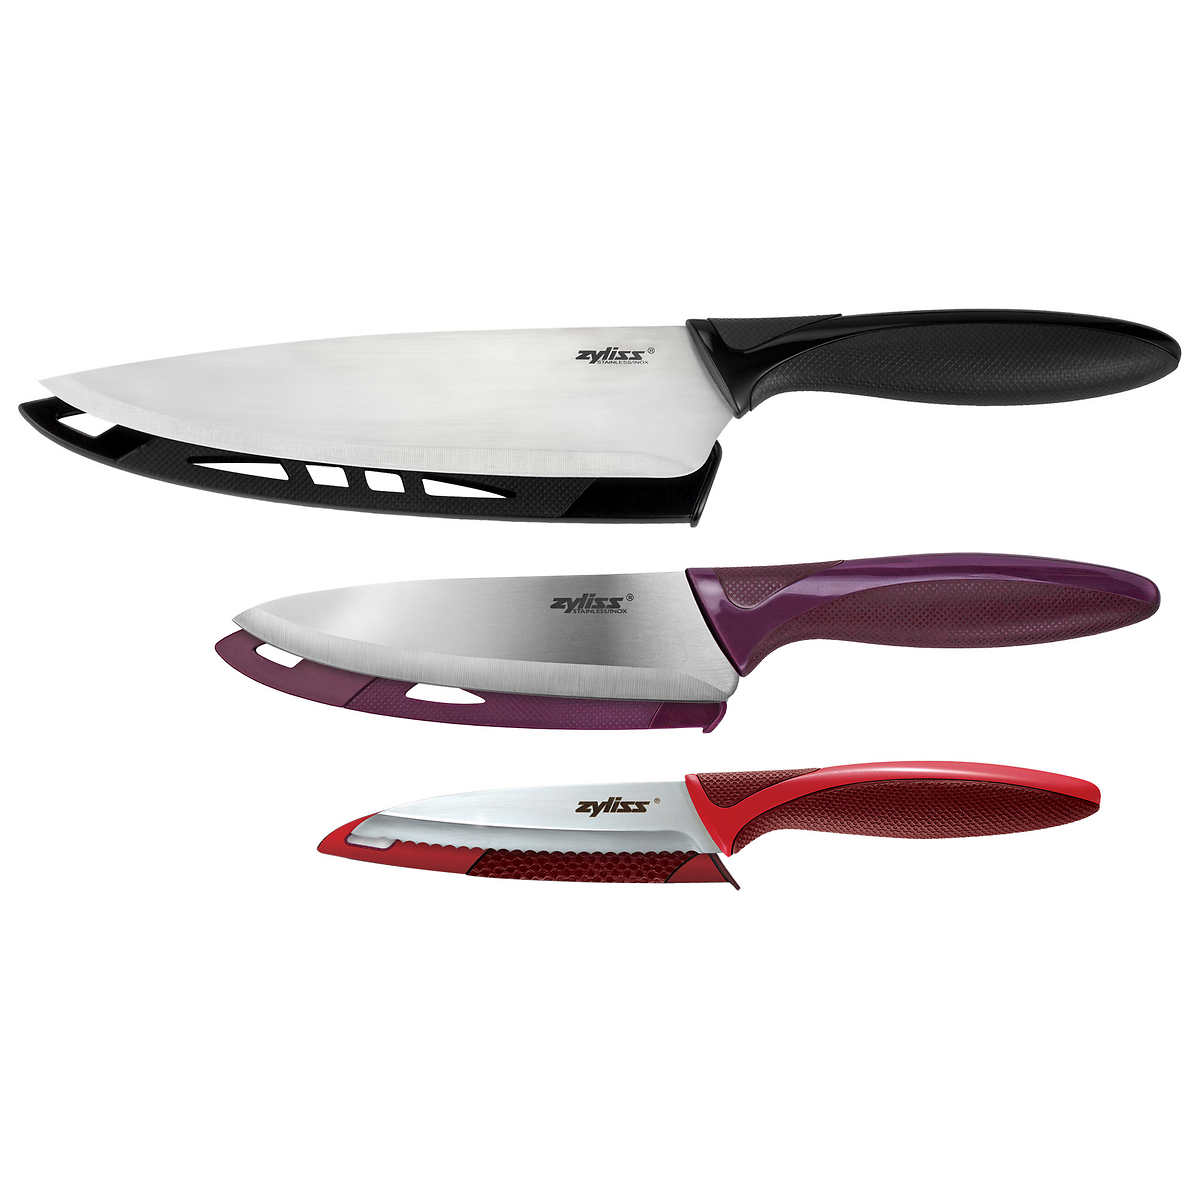 cutco 6-piece kitchen knives set with tray